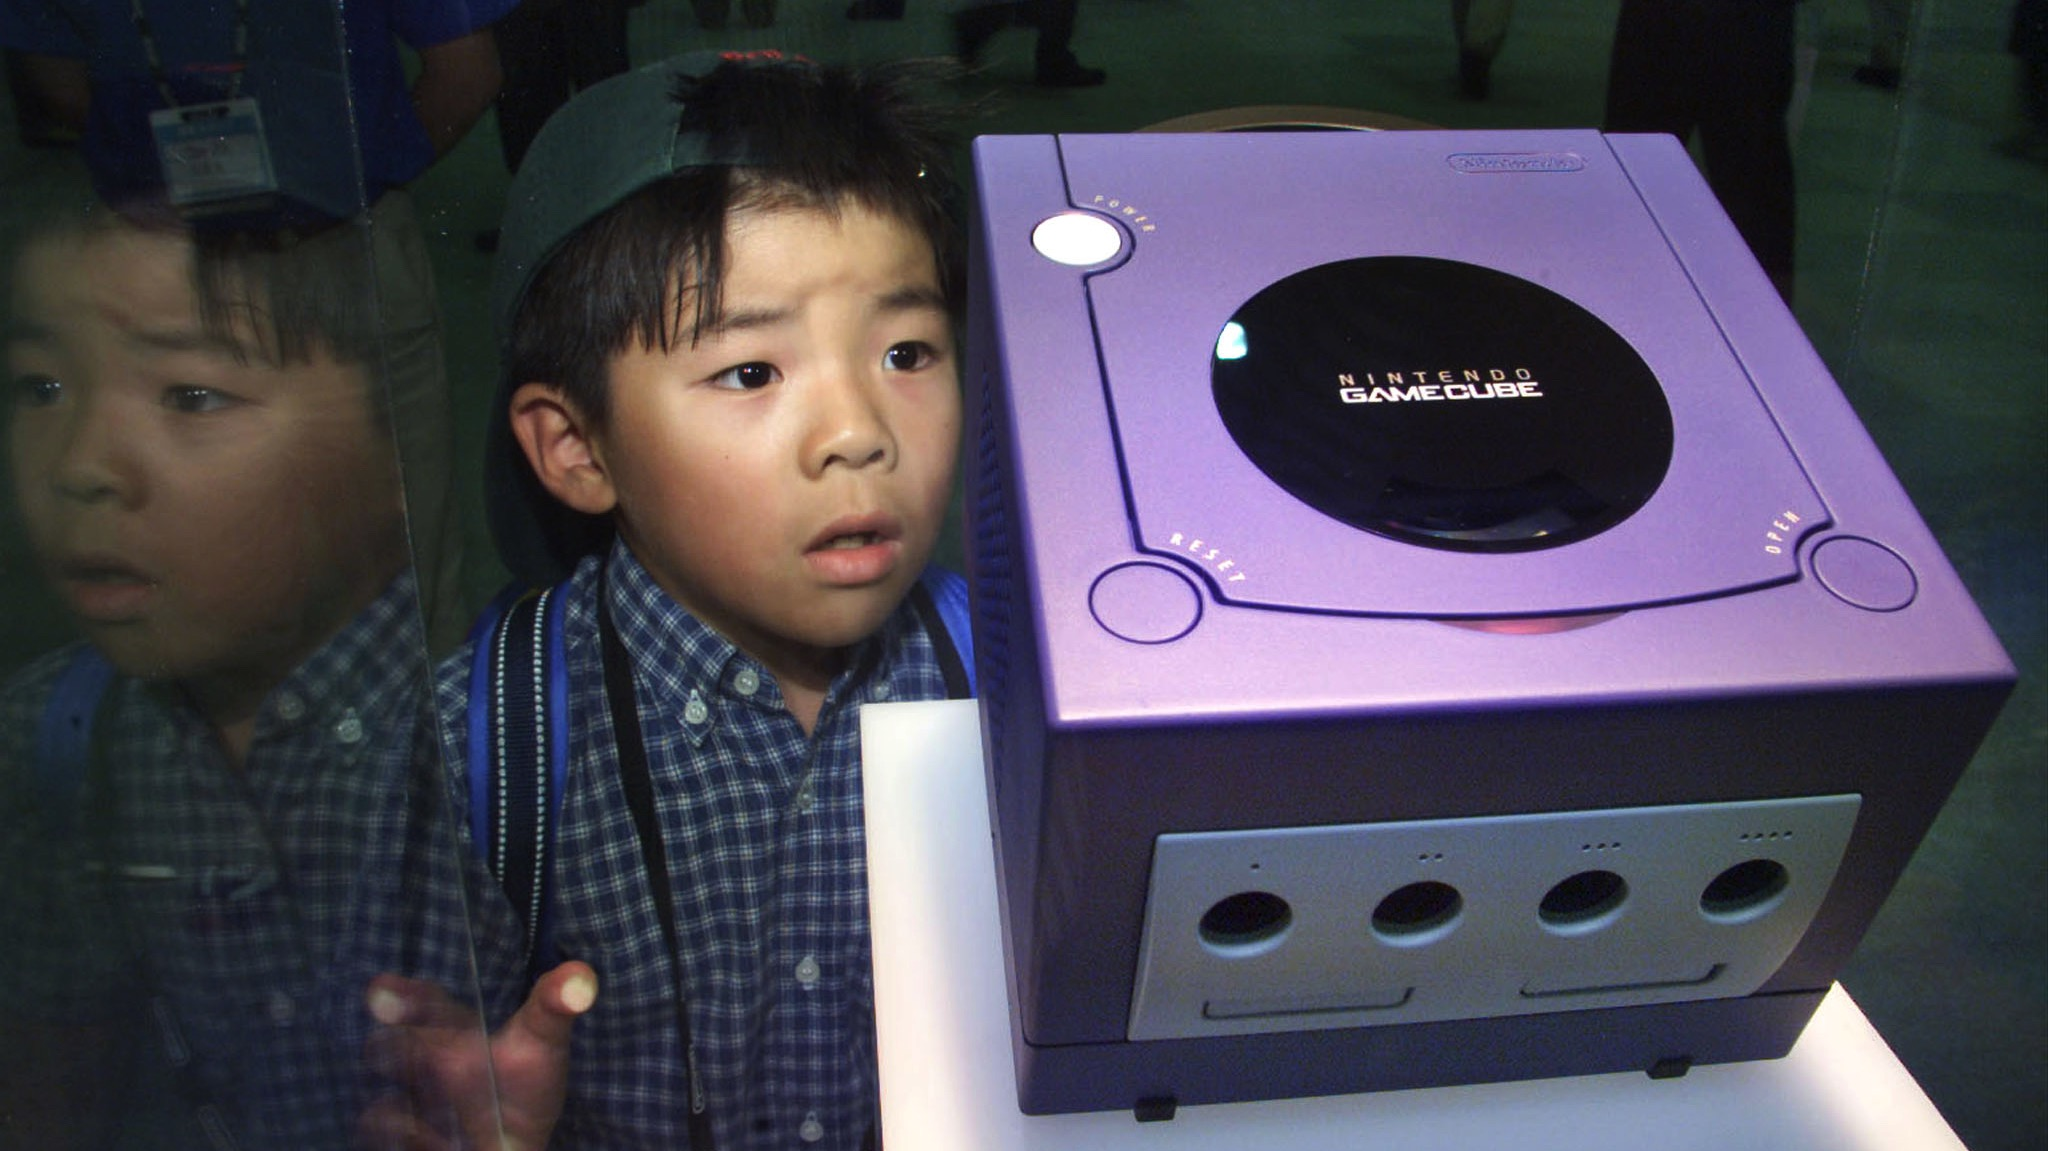 Seven-year-old Tsubasa Araki gazes at Gamecube on display at Nintendo Space World 2000 in Makuhari August 24, 2000. Nintendo Co on Thursday became the last of Japan's big game machine makers to enter the competitive market for next-generation consoles, with plans to start selling its Gamecube in Japan next July. The Gamecube will use an IBM Corp microprocessor and compete with Sony Corp's cutting-edge PlayStation2 and Sega Enterprise Ltd's Dreamcast.  TA/HL - RTR7K7C